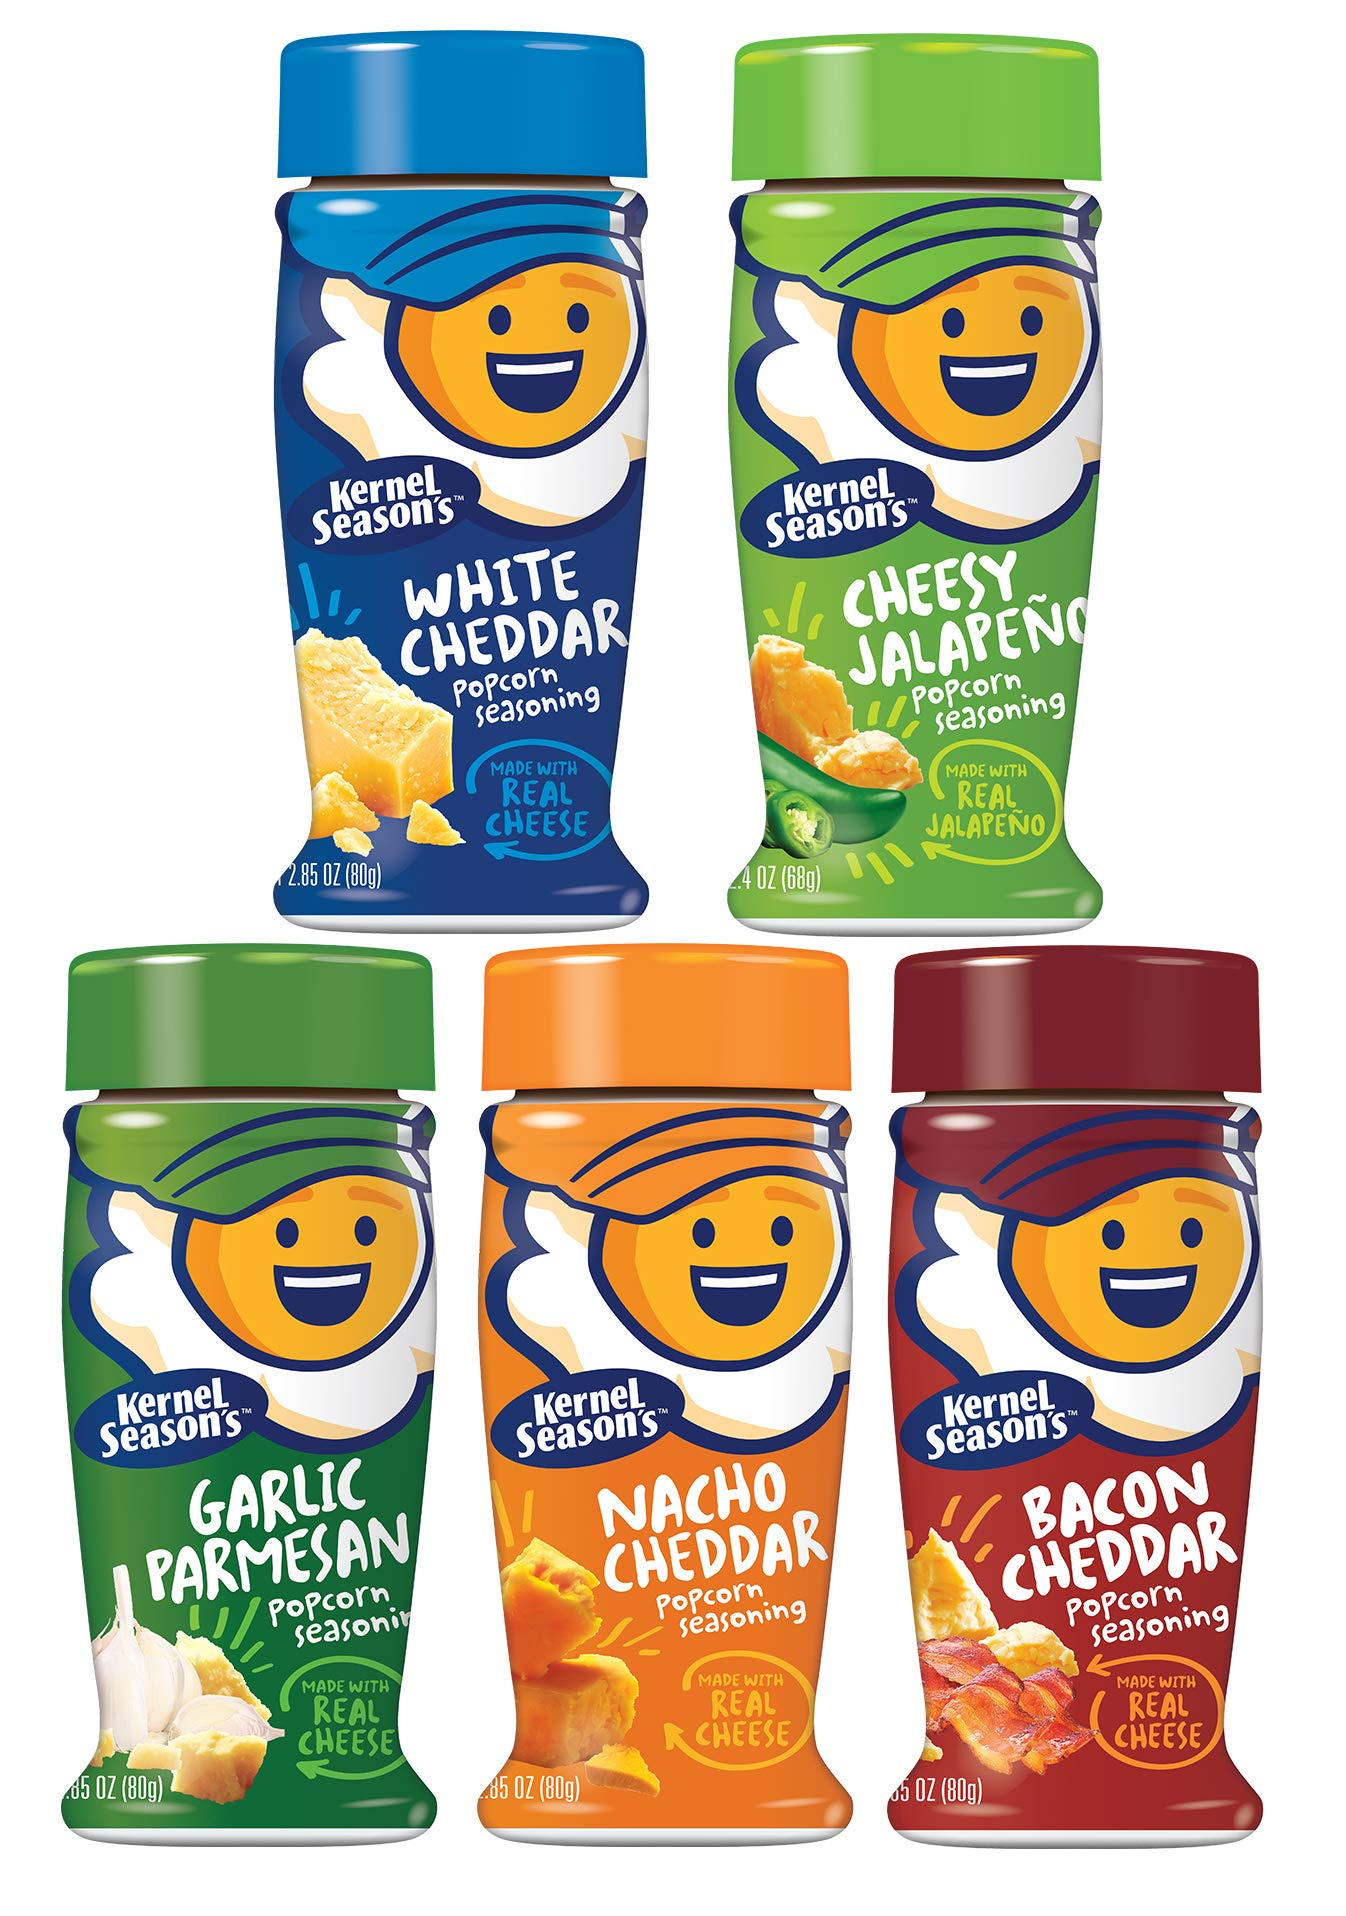 Kernel Seasons Popcorn Seasoning Kit CHEESE LOVERS Complete Set (Variety Pack of 5 Different Cheesy Flavors) by Kernel Season's